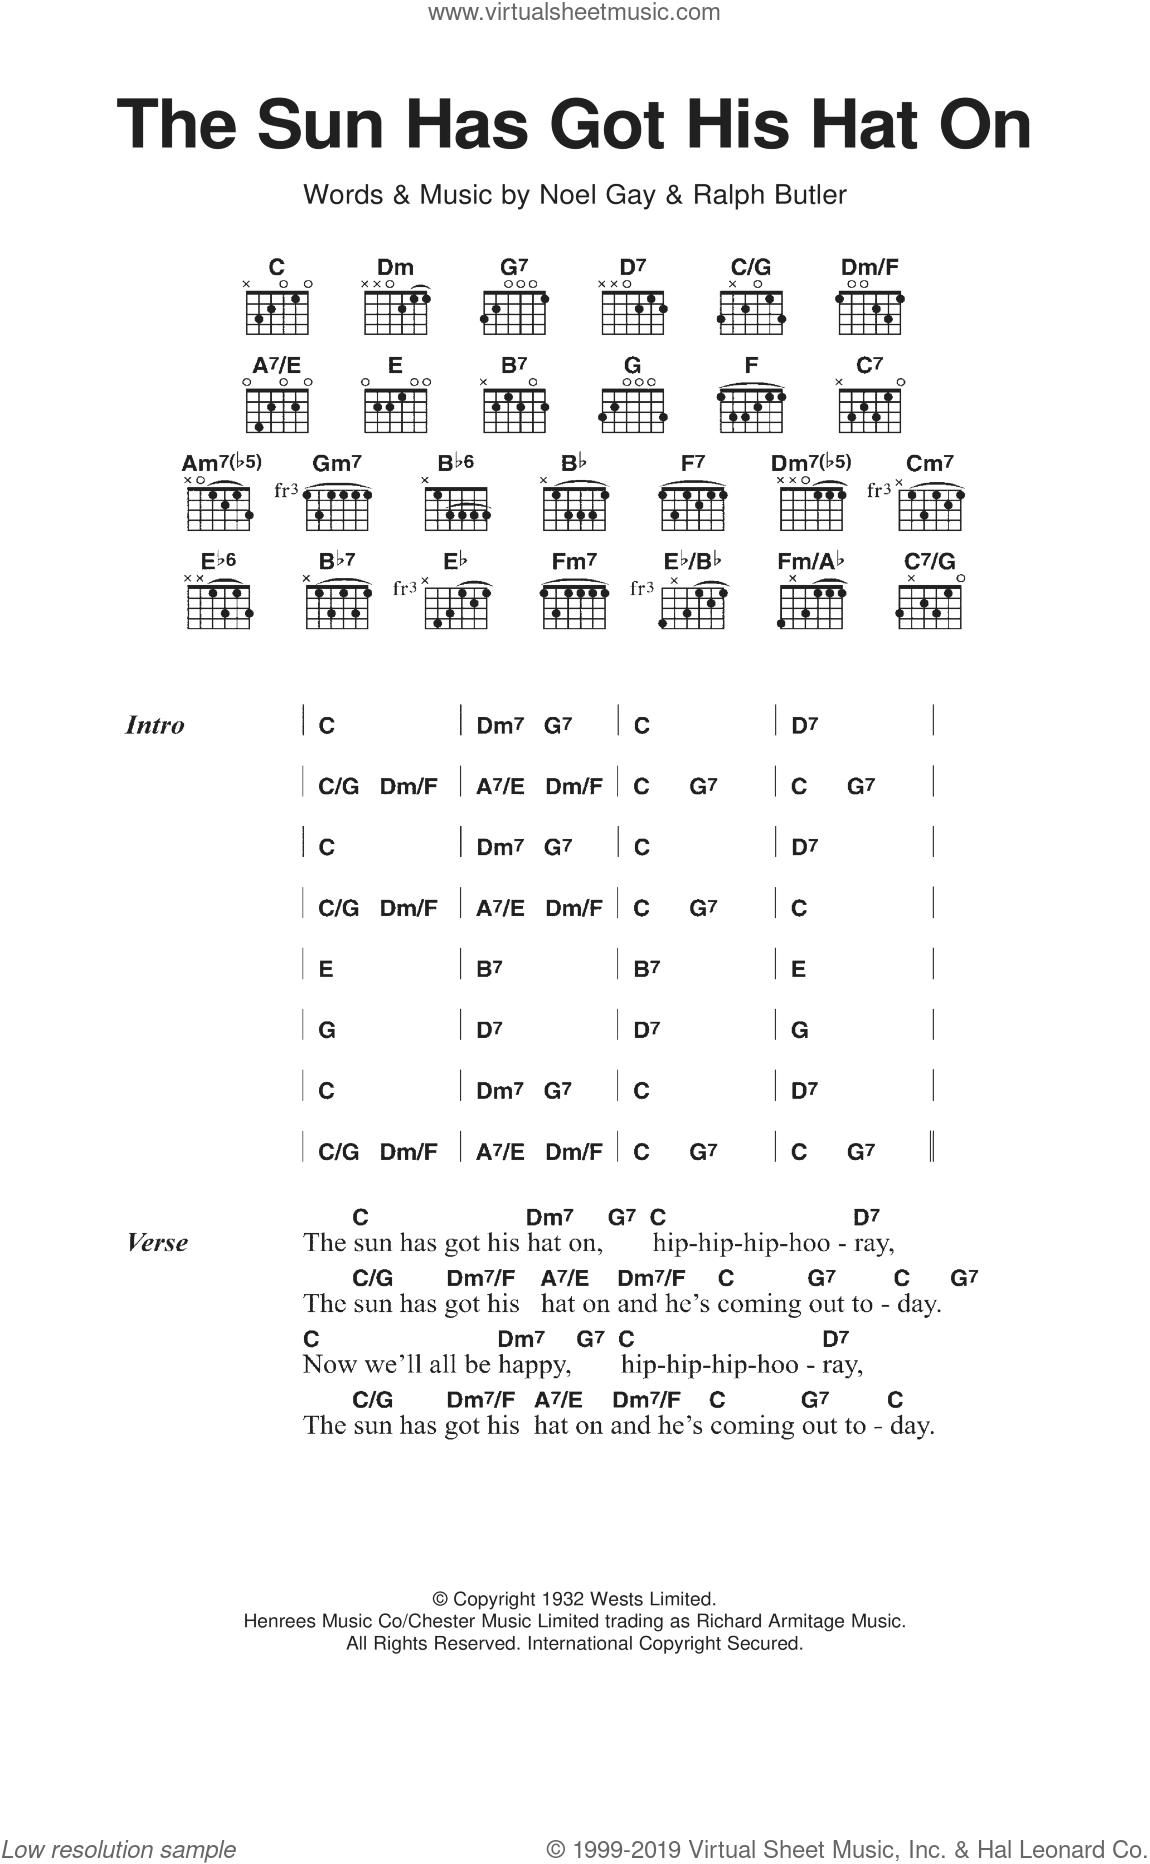 The Sun Has Got His Hat On sheet music for guitar (chords) by Noel Gay and Ralph Butler, classical score, intermediate guitar (chords). Score Image Preview.